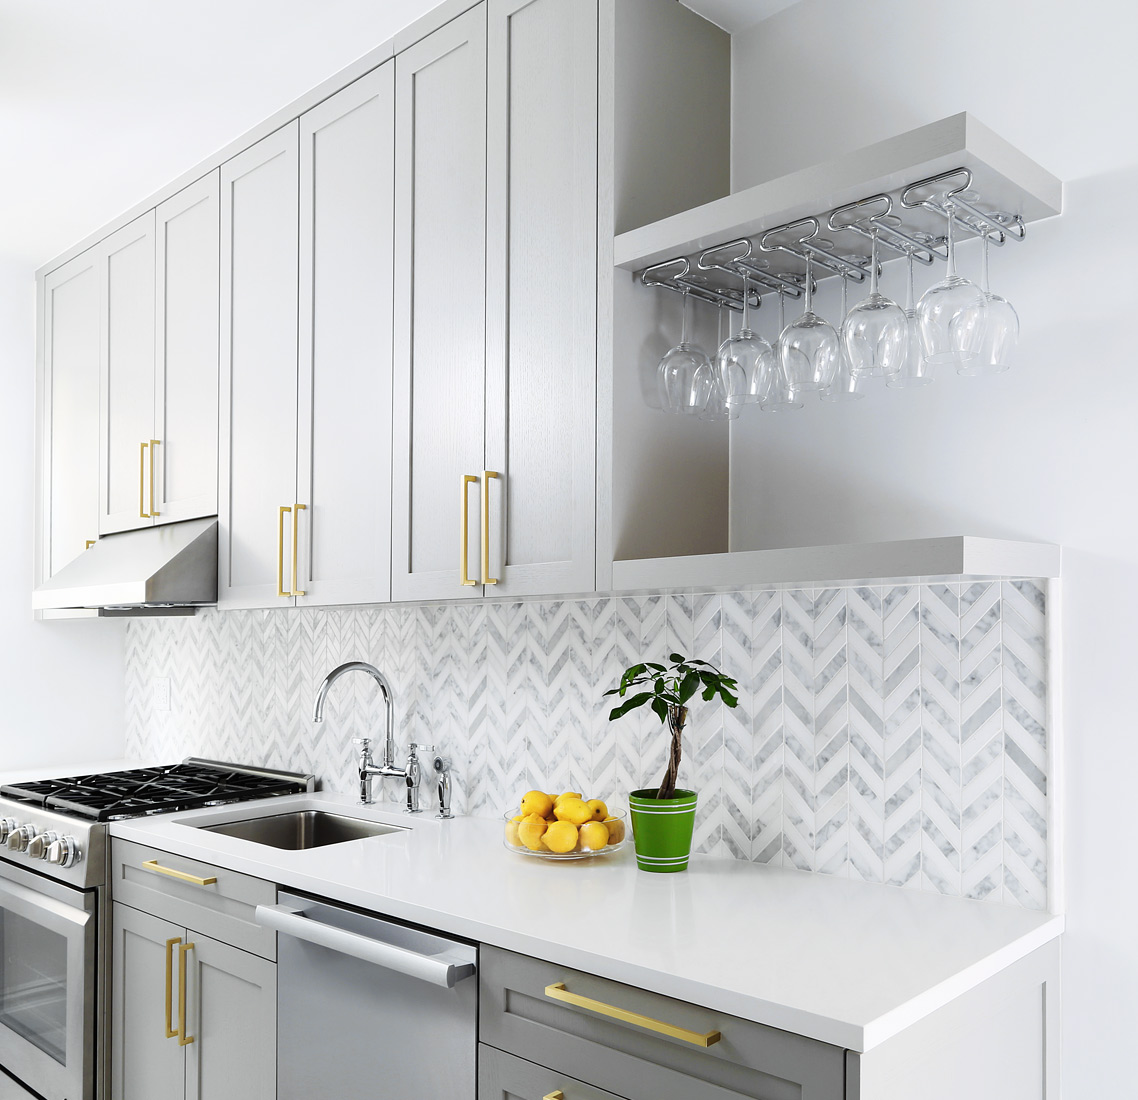 Unique Shooting Kitchen Nyc Picture Collection - Kitchen Cabinets ...